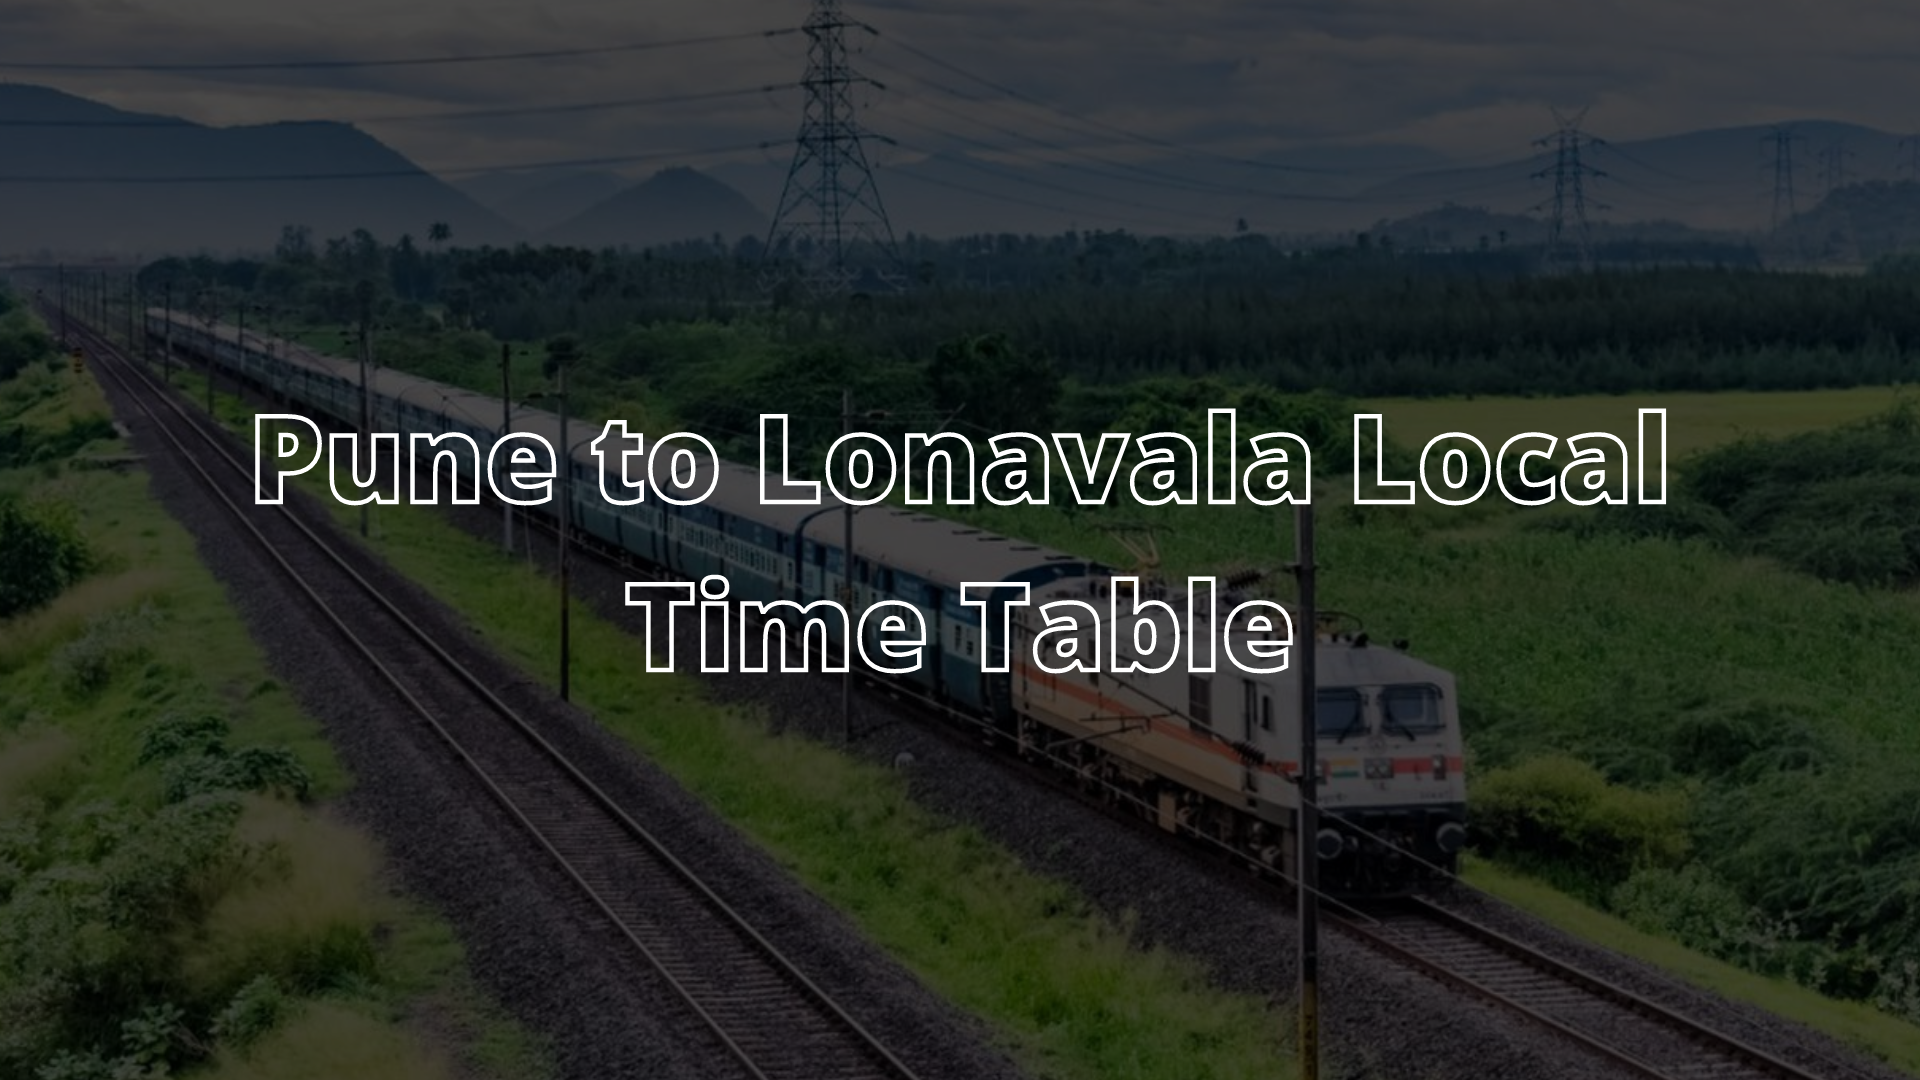 Pune to Lonavala Local Time Table